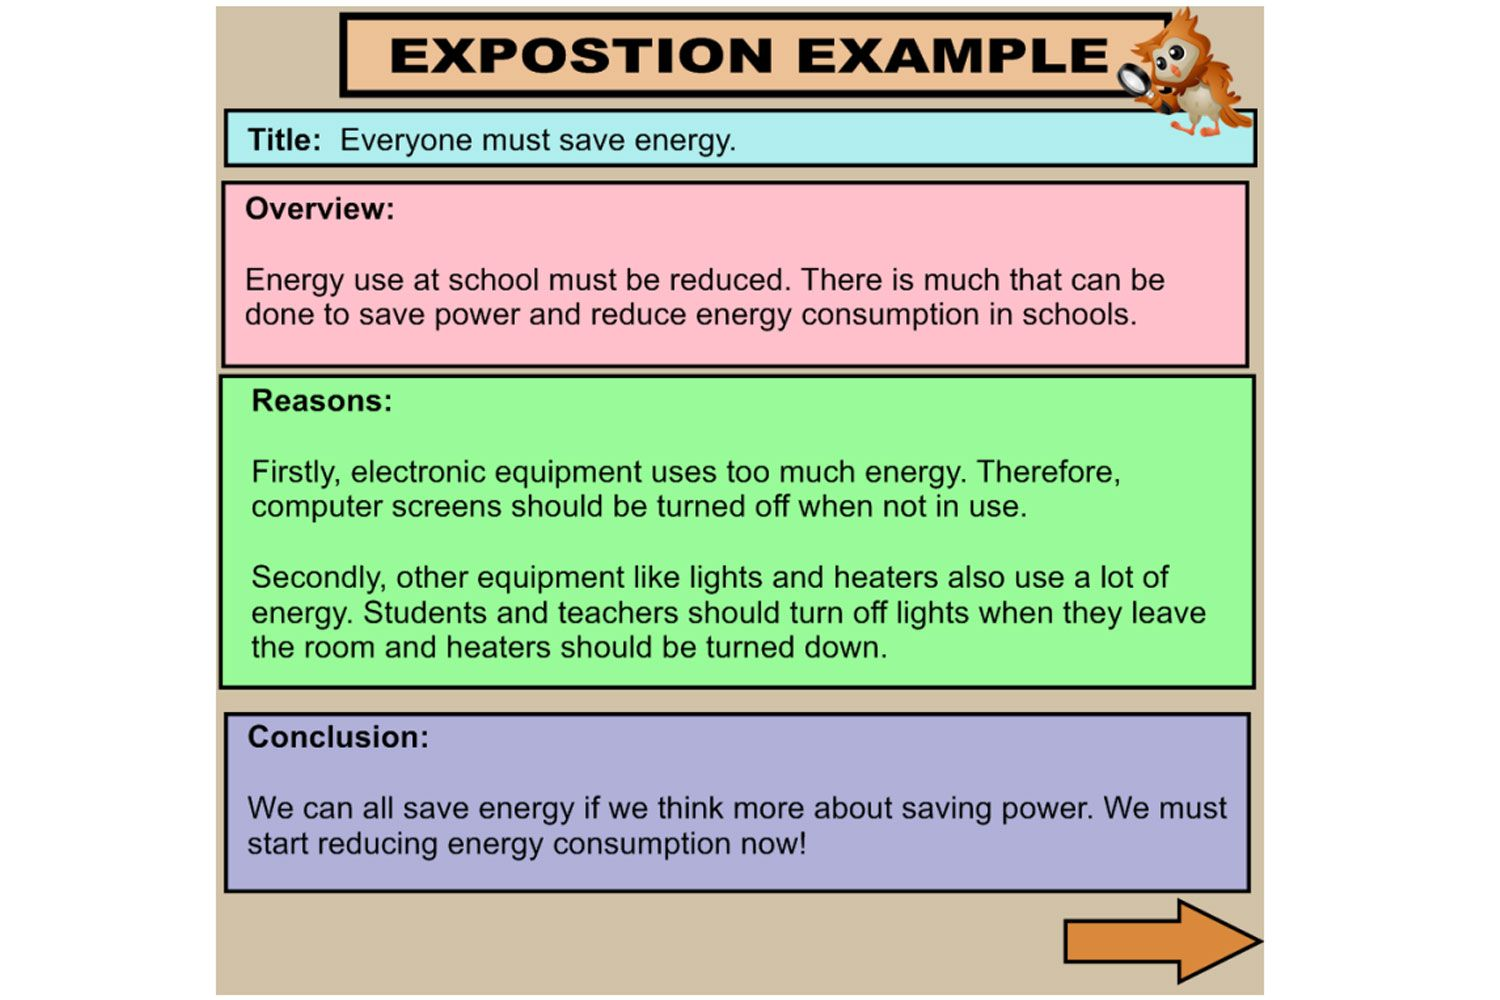 Explicitly Demonstrate The Structure Of An Exposition Text